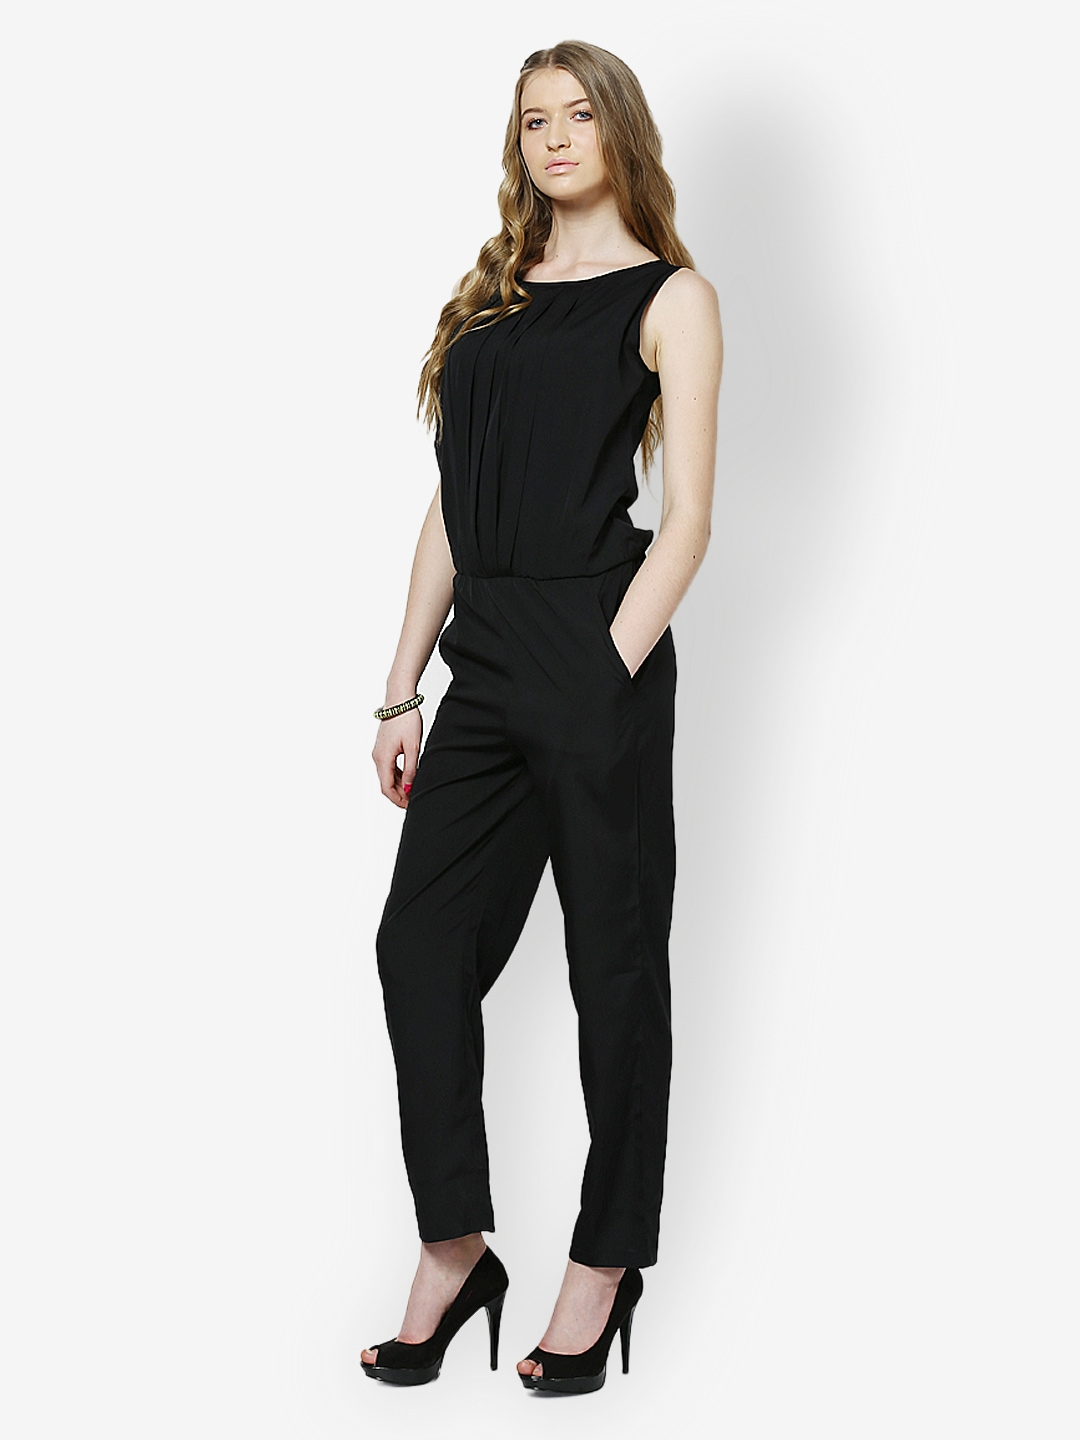 d87aefe48d8 Buy Magnetic Designs Women Black Jumpsuit 1305081 for women online in india  on Myntra at Yebhi.com